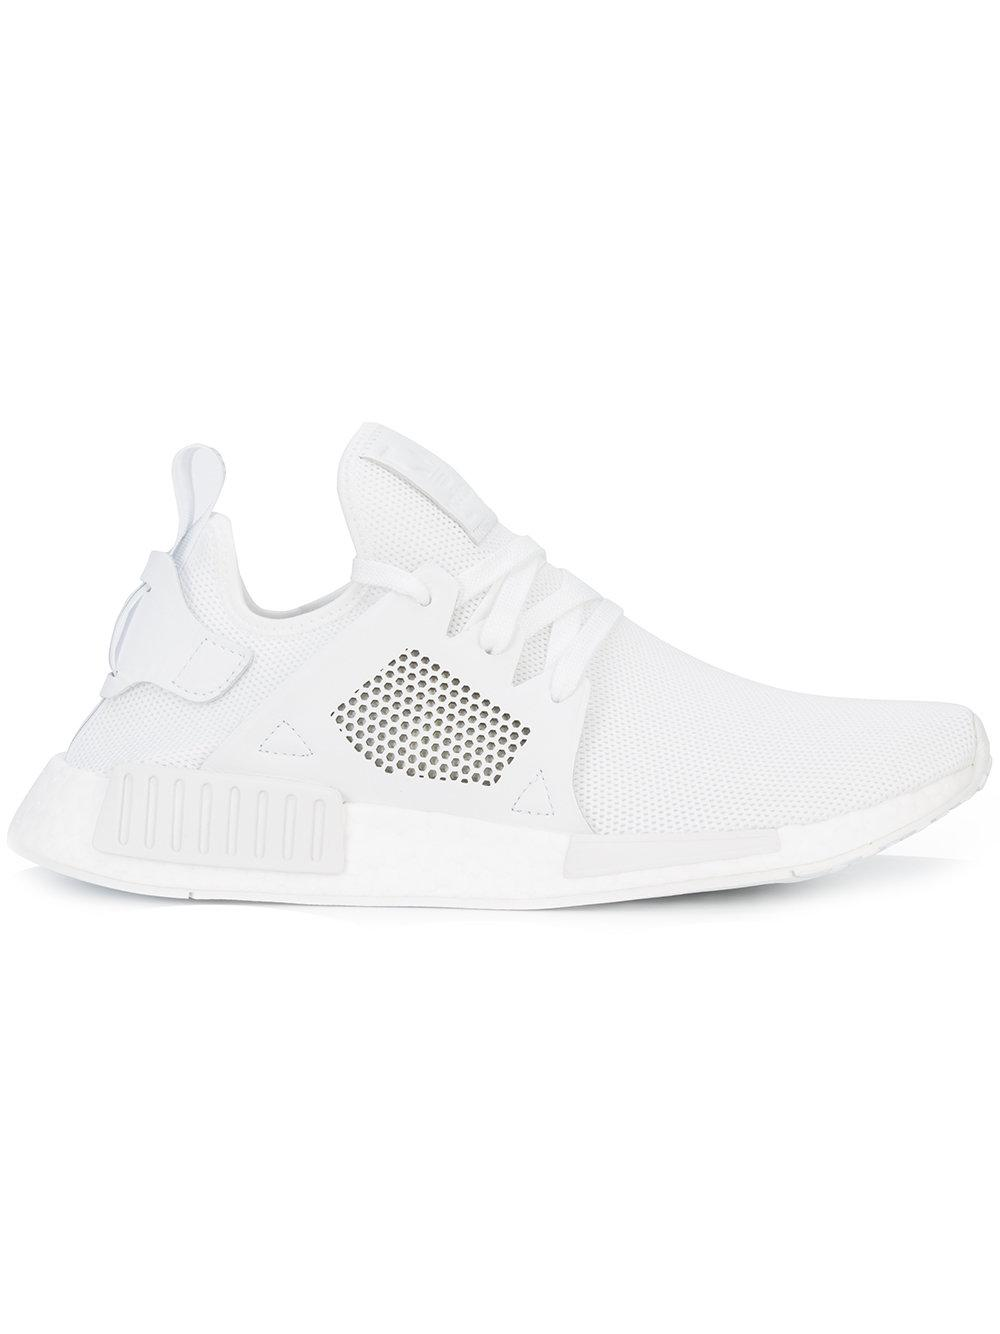 e0550cc661085 Adidas Nmd Xr1 Black Solar Red price in Singapore